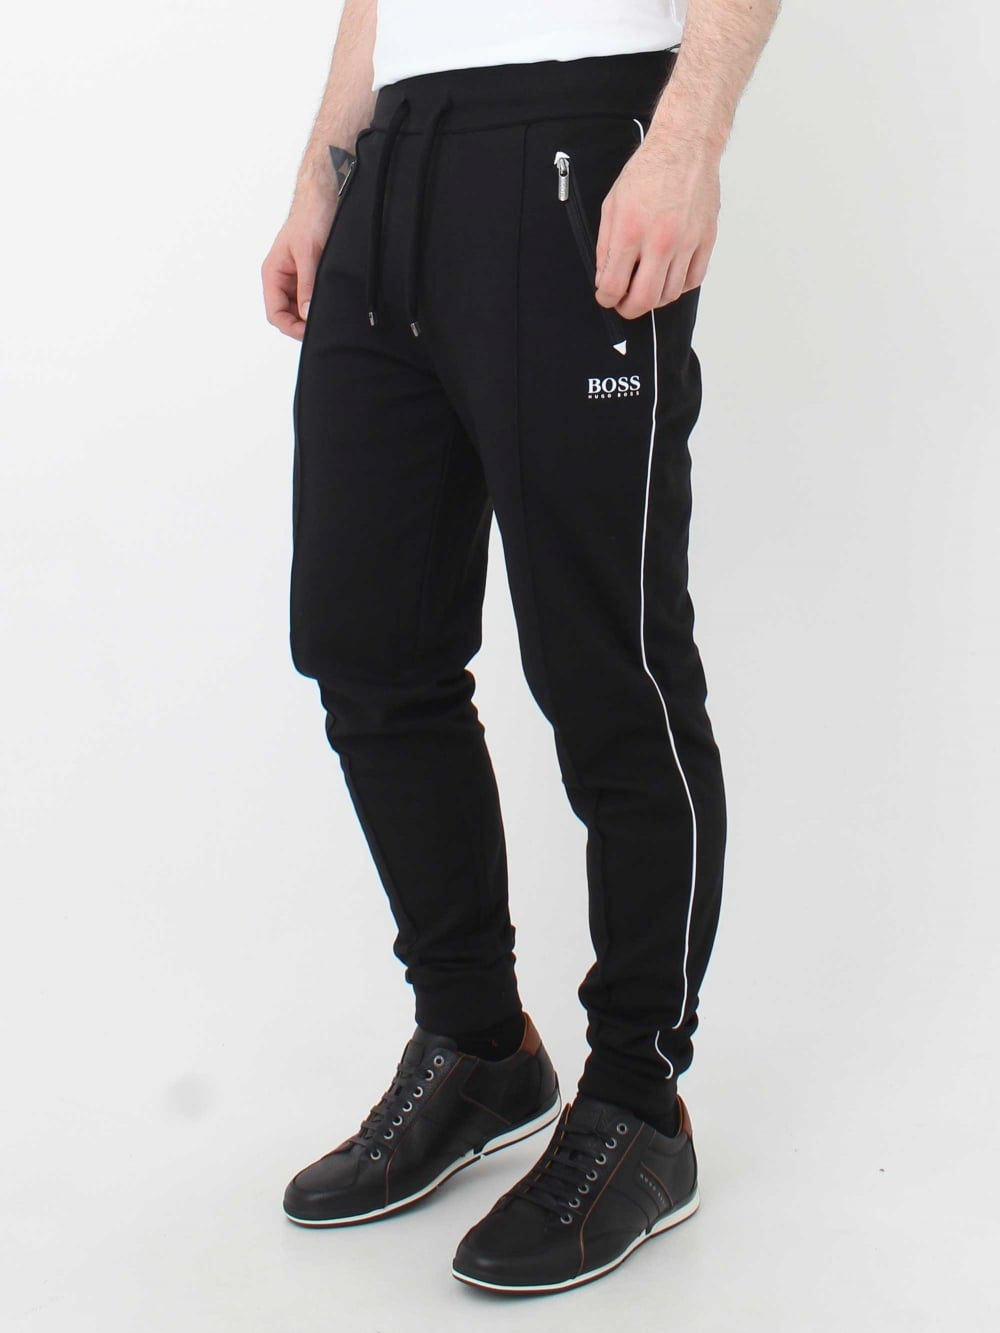 top-rated professional super service elegant and sturdy package Tracksuit Pants - Black